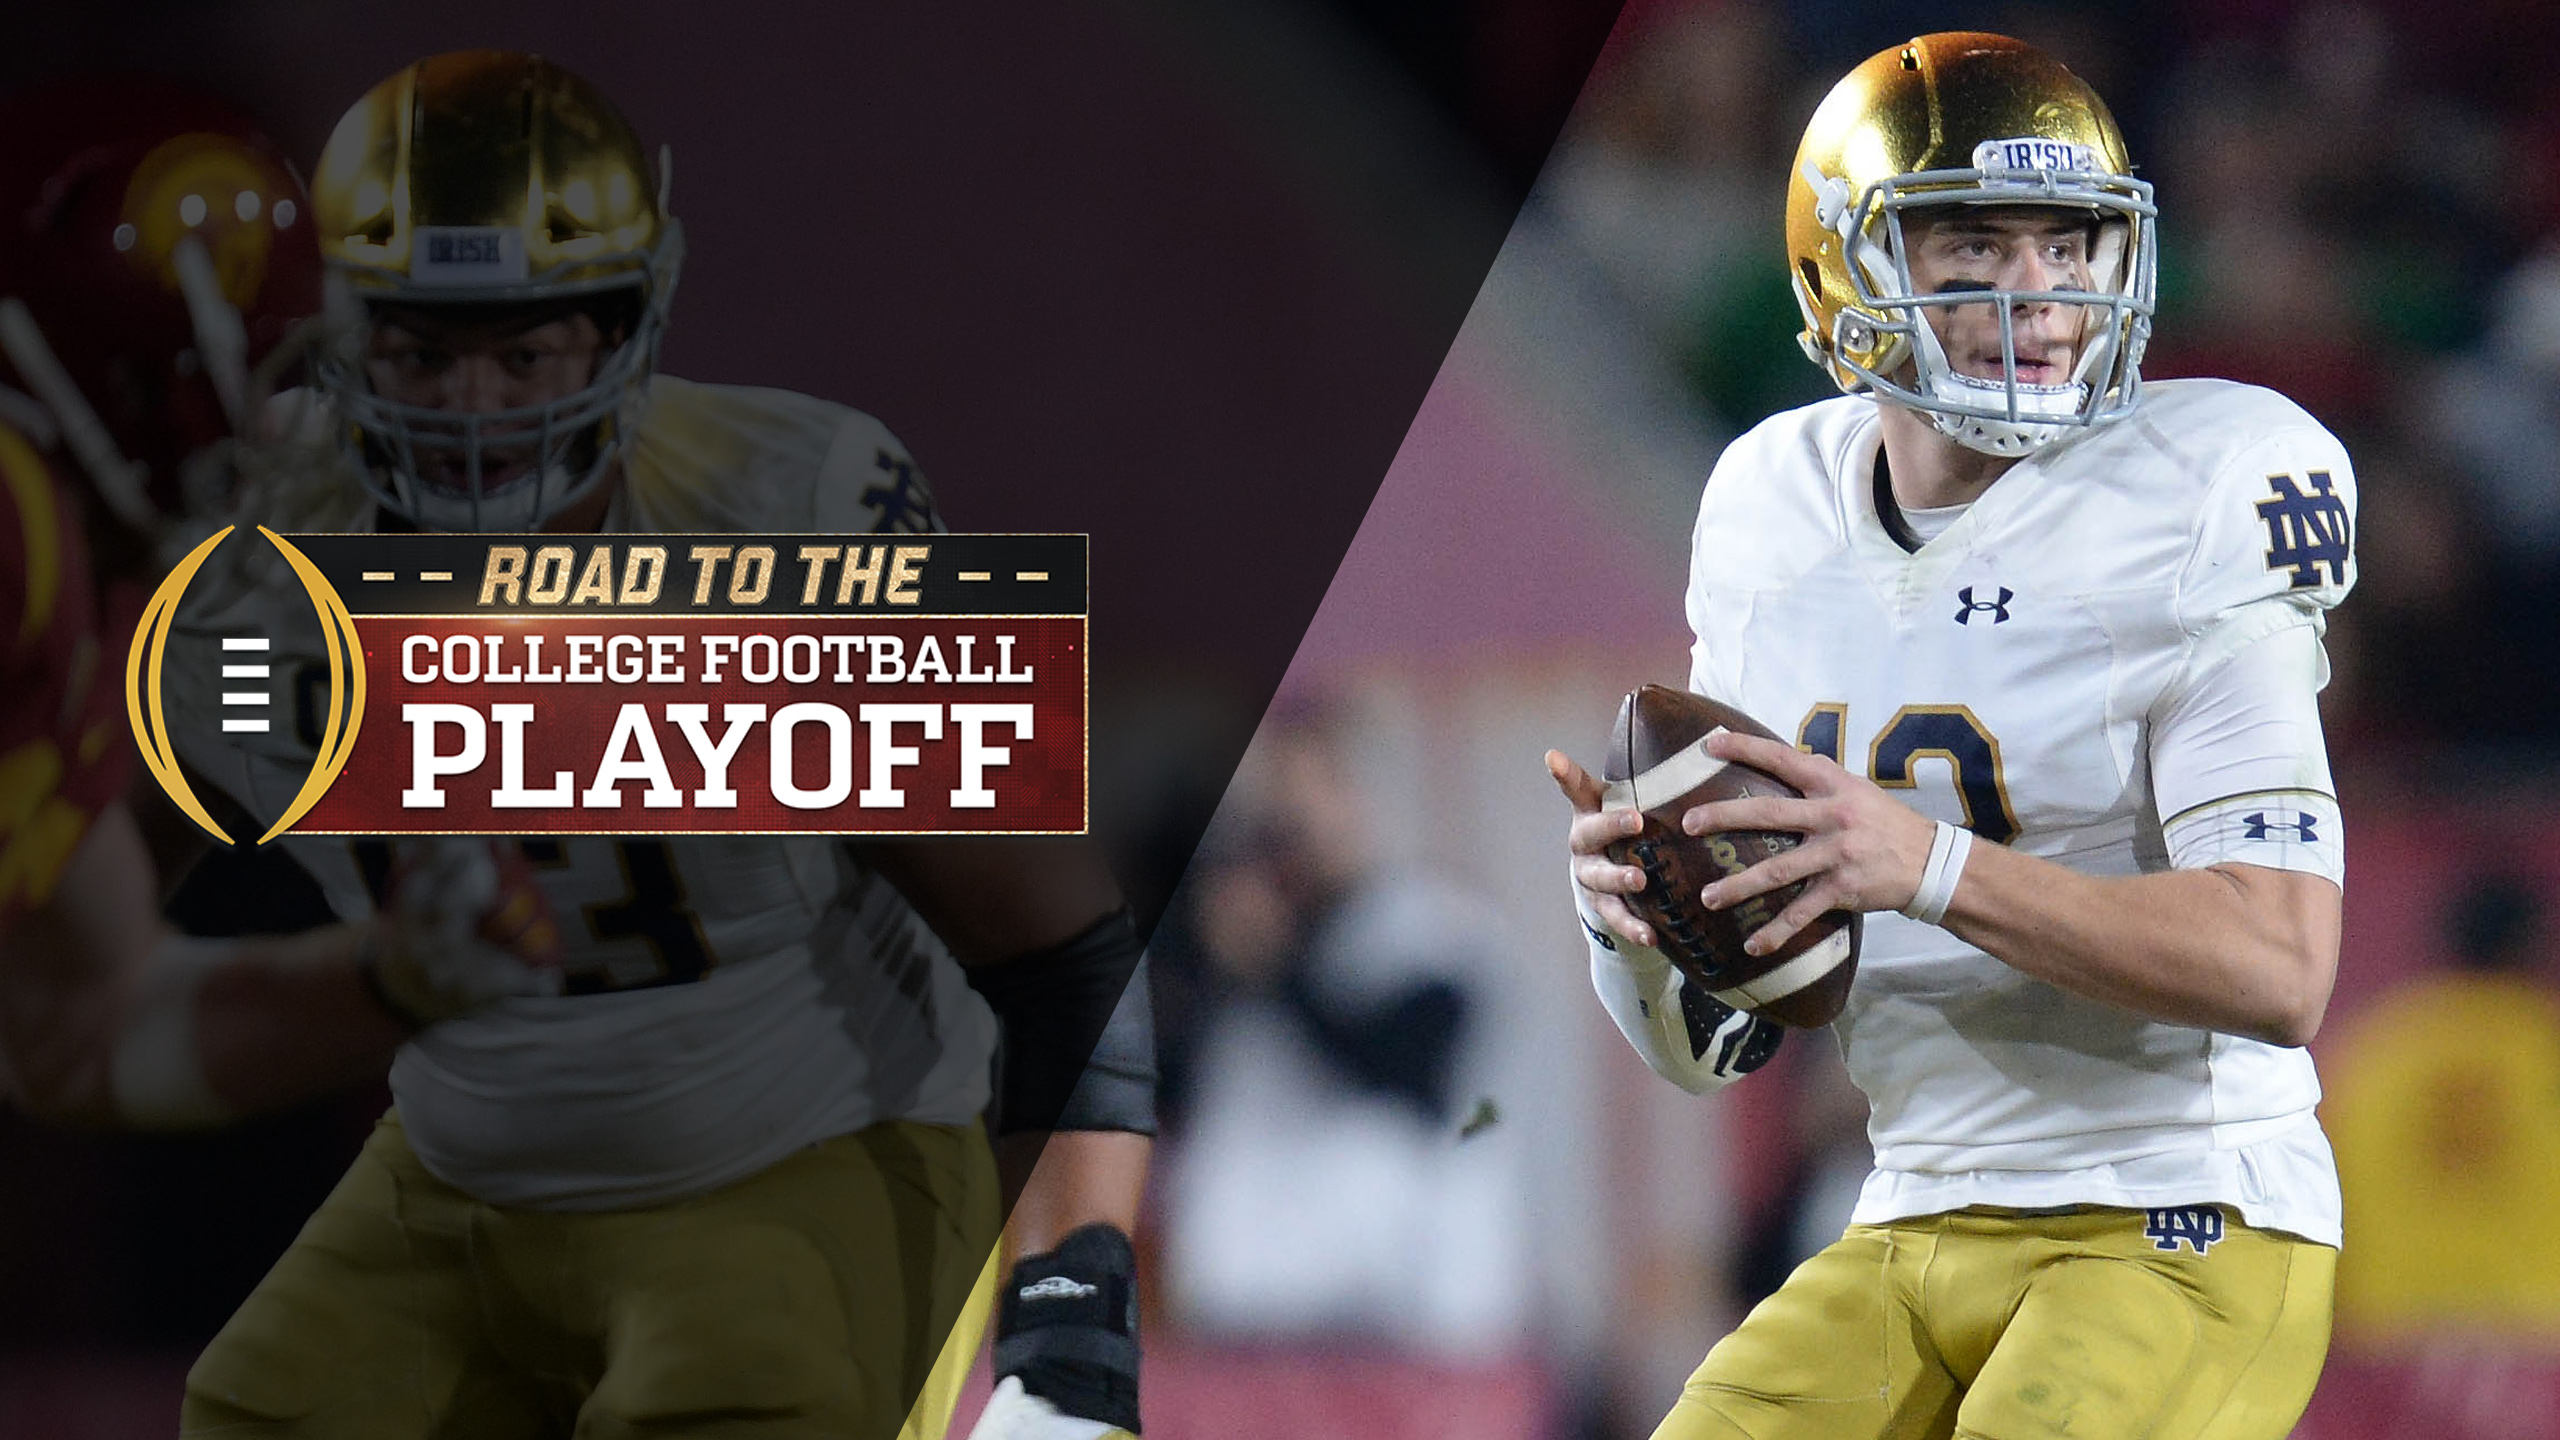 Road To The College Football Playoff Presented by Goodyear